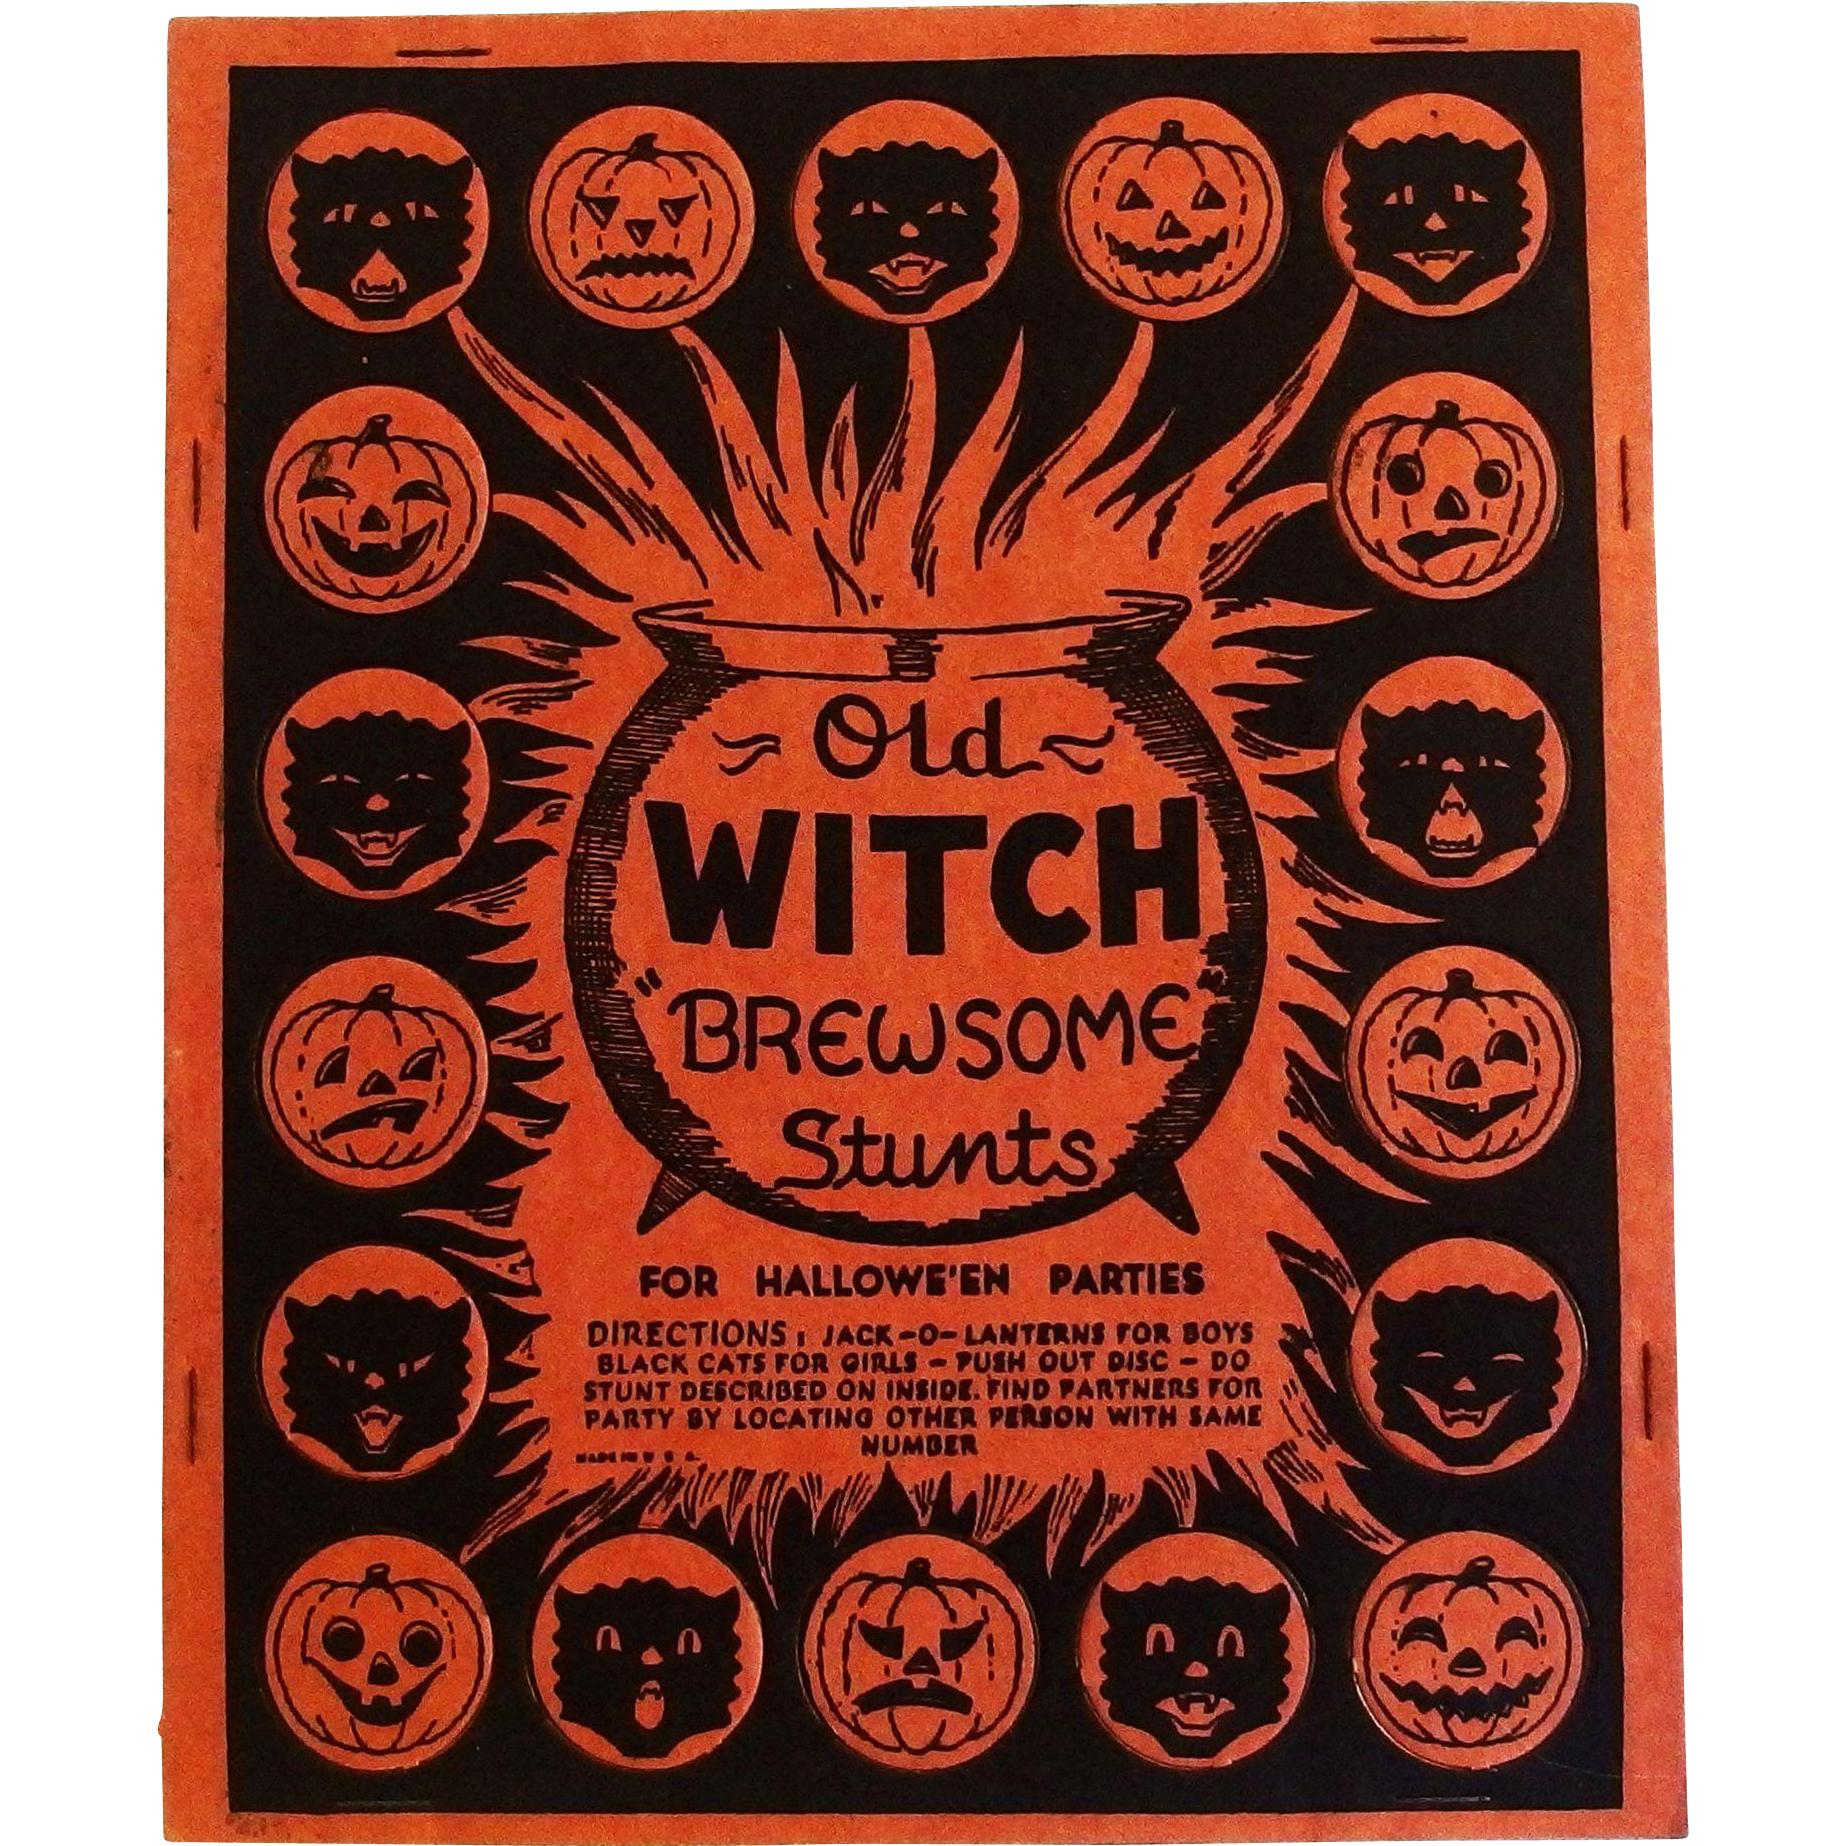 old witch brewsome stunts game for halloween parties halloween decoration beistle company 1948